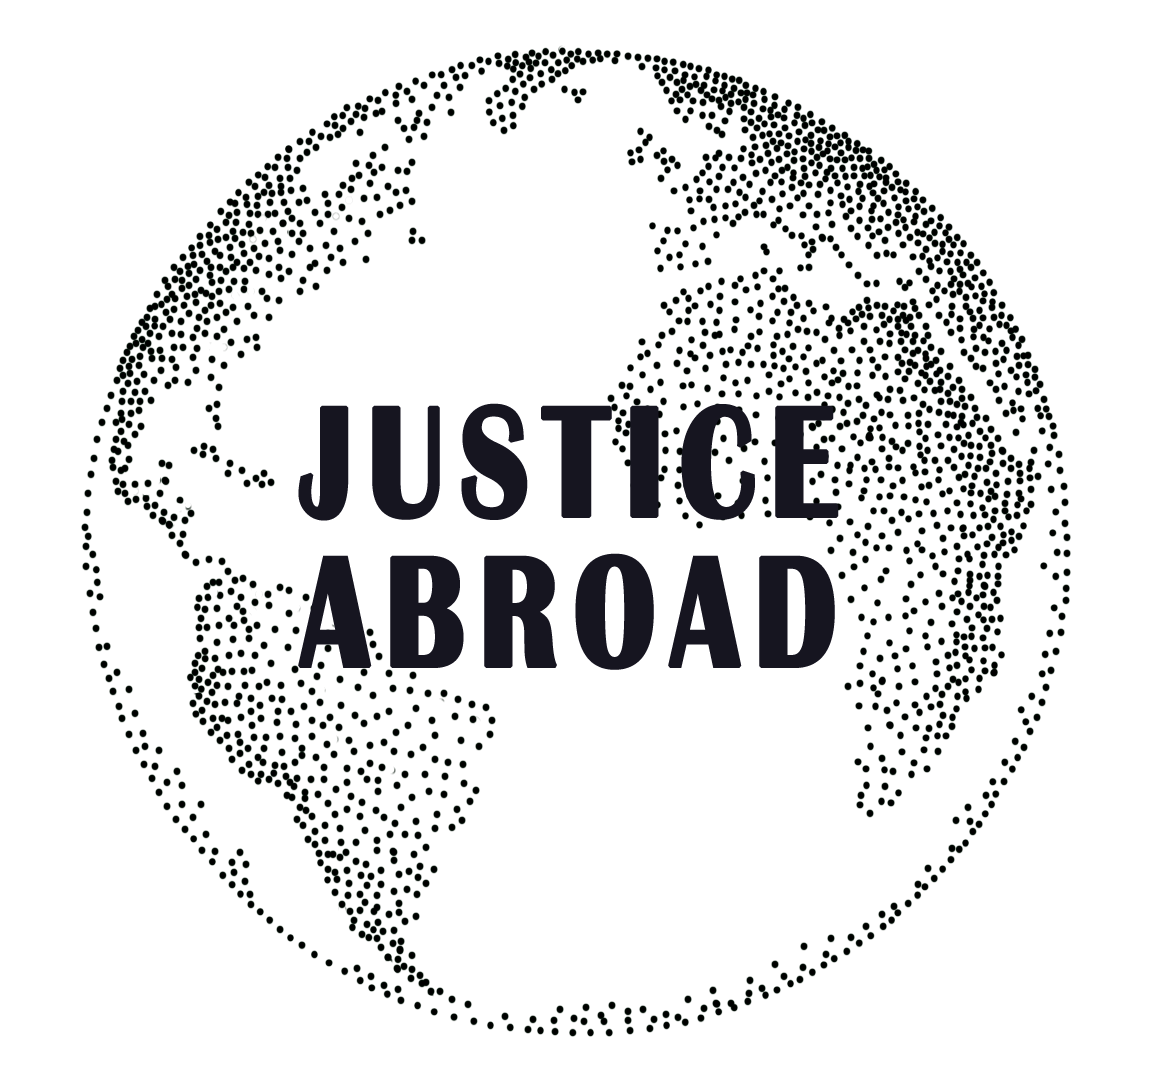 JUSTICE ABROAD